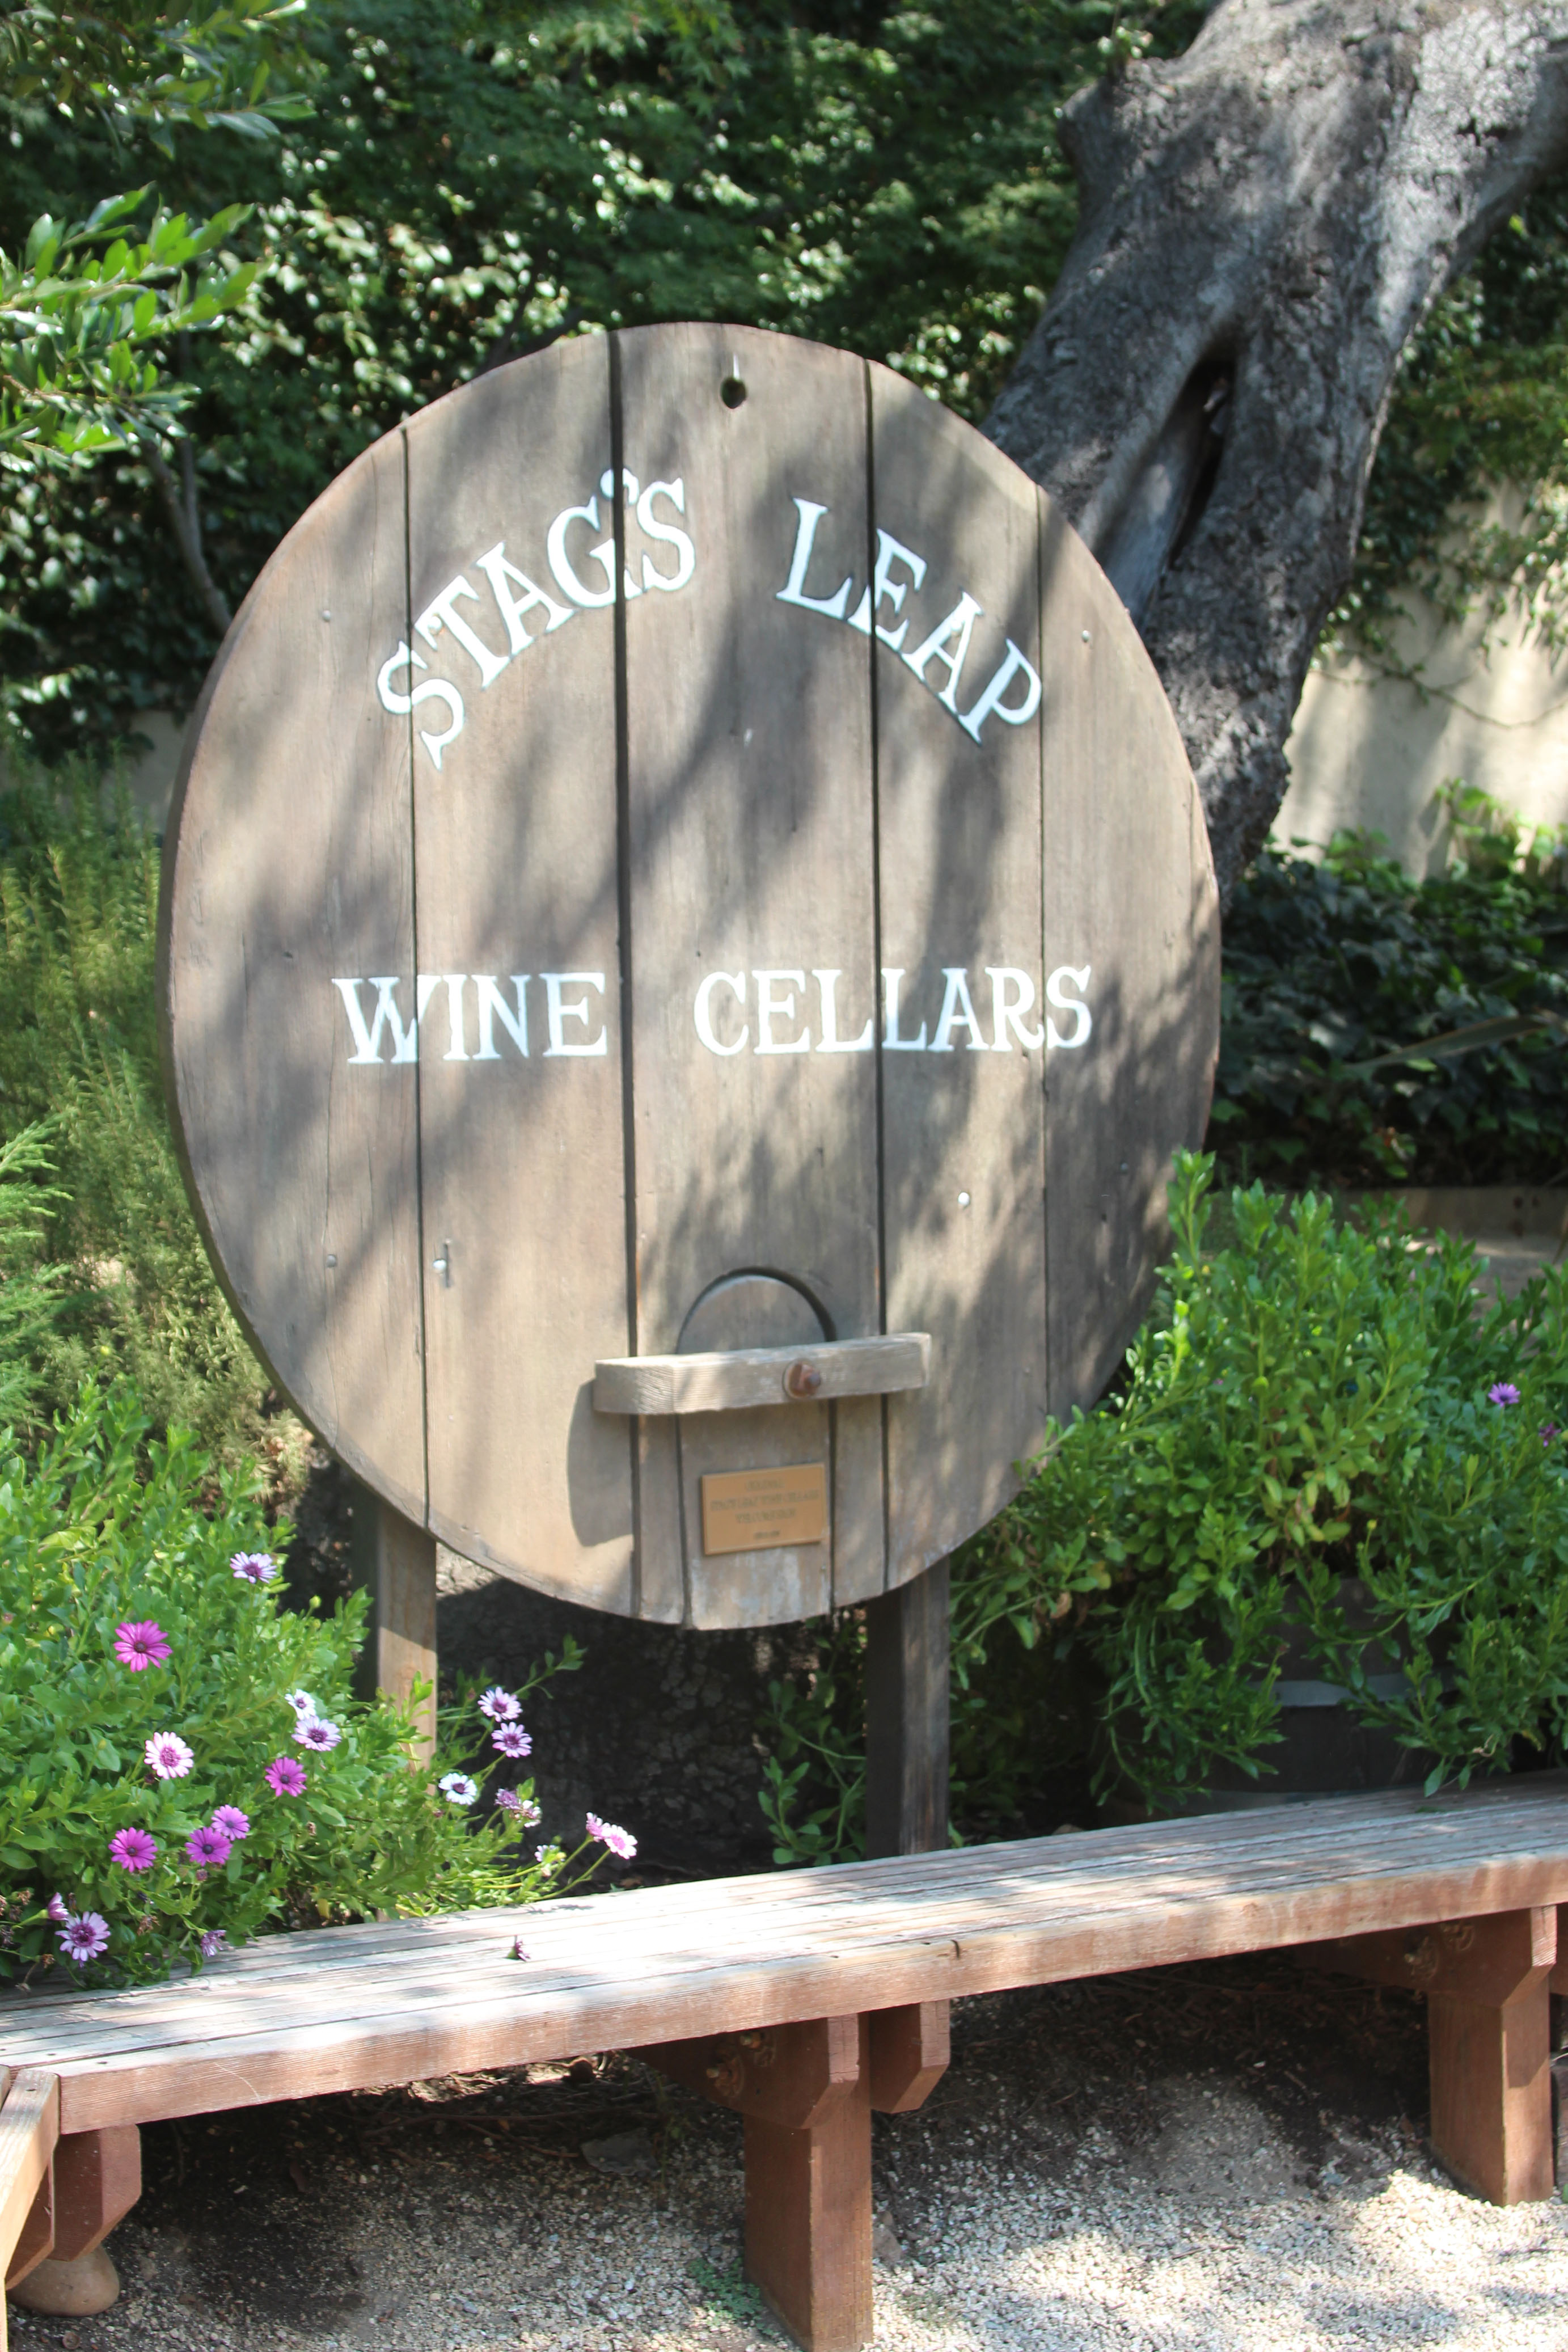 Stag's Leap Sign